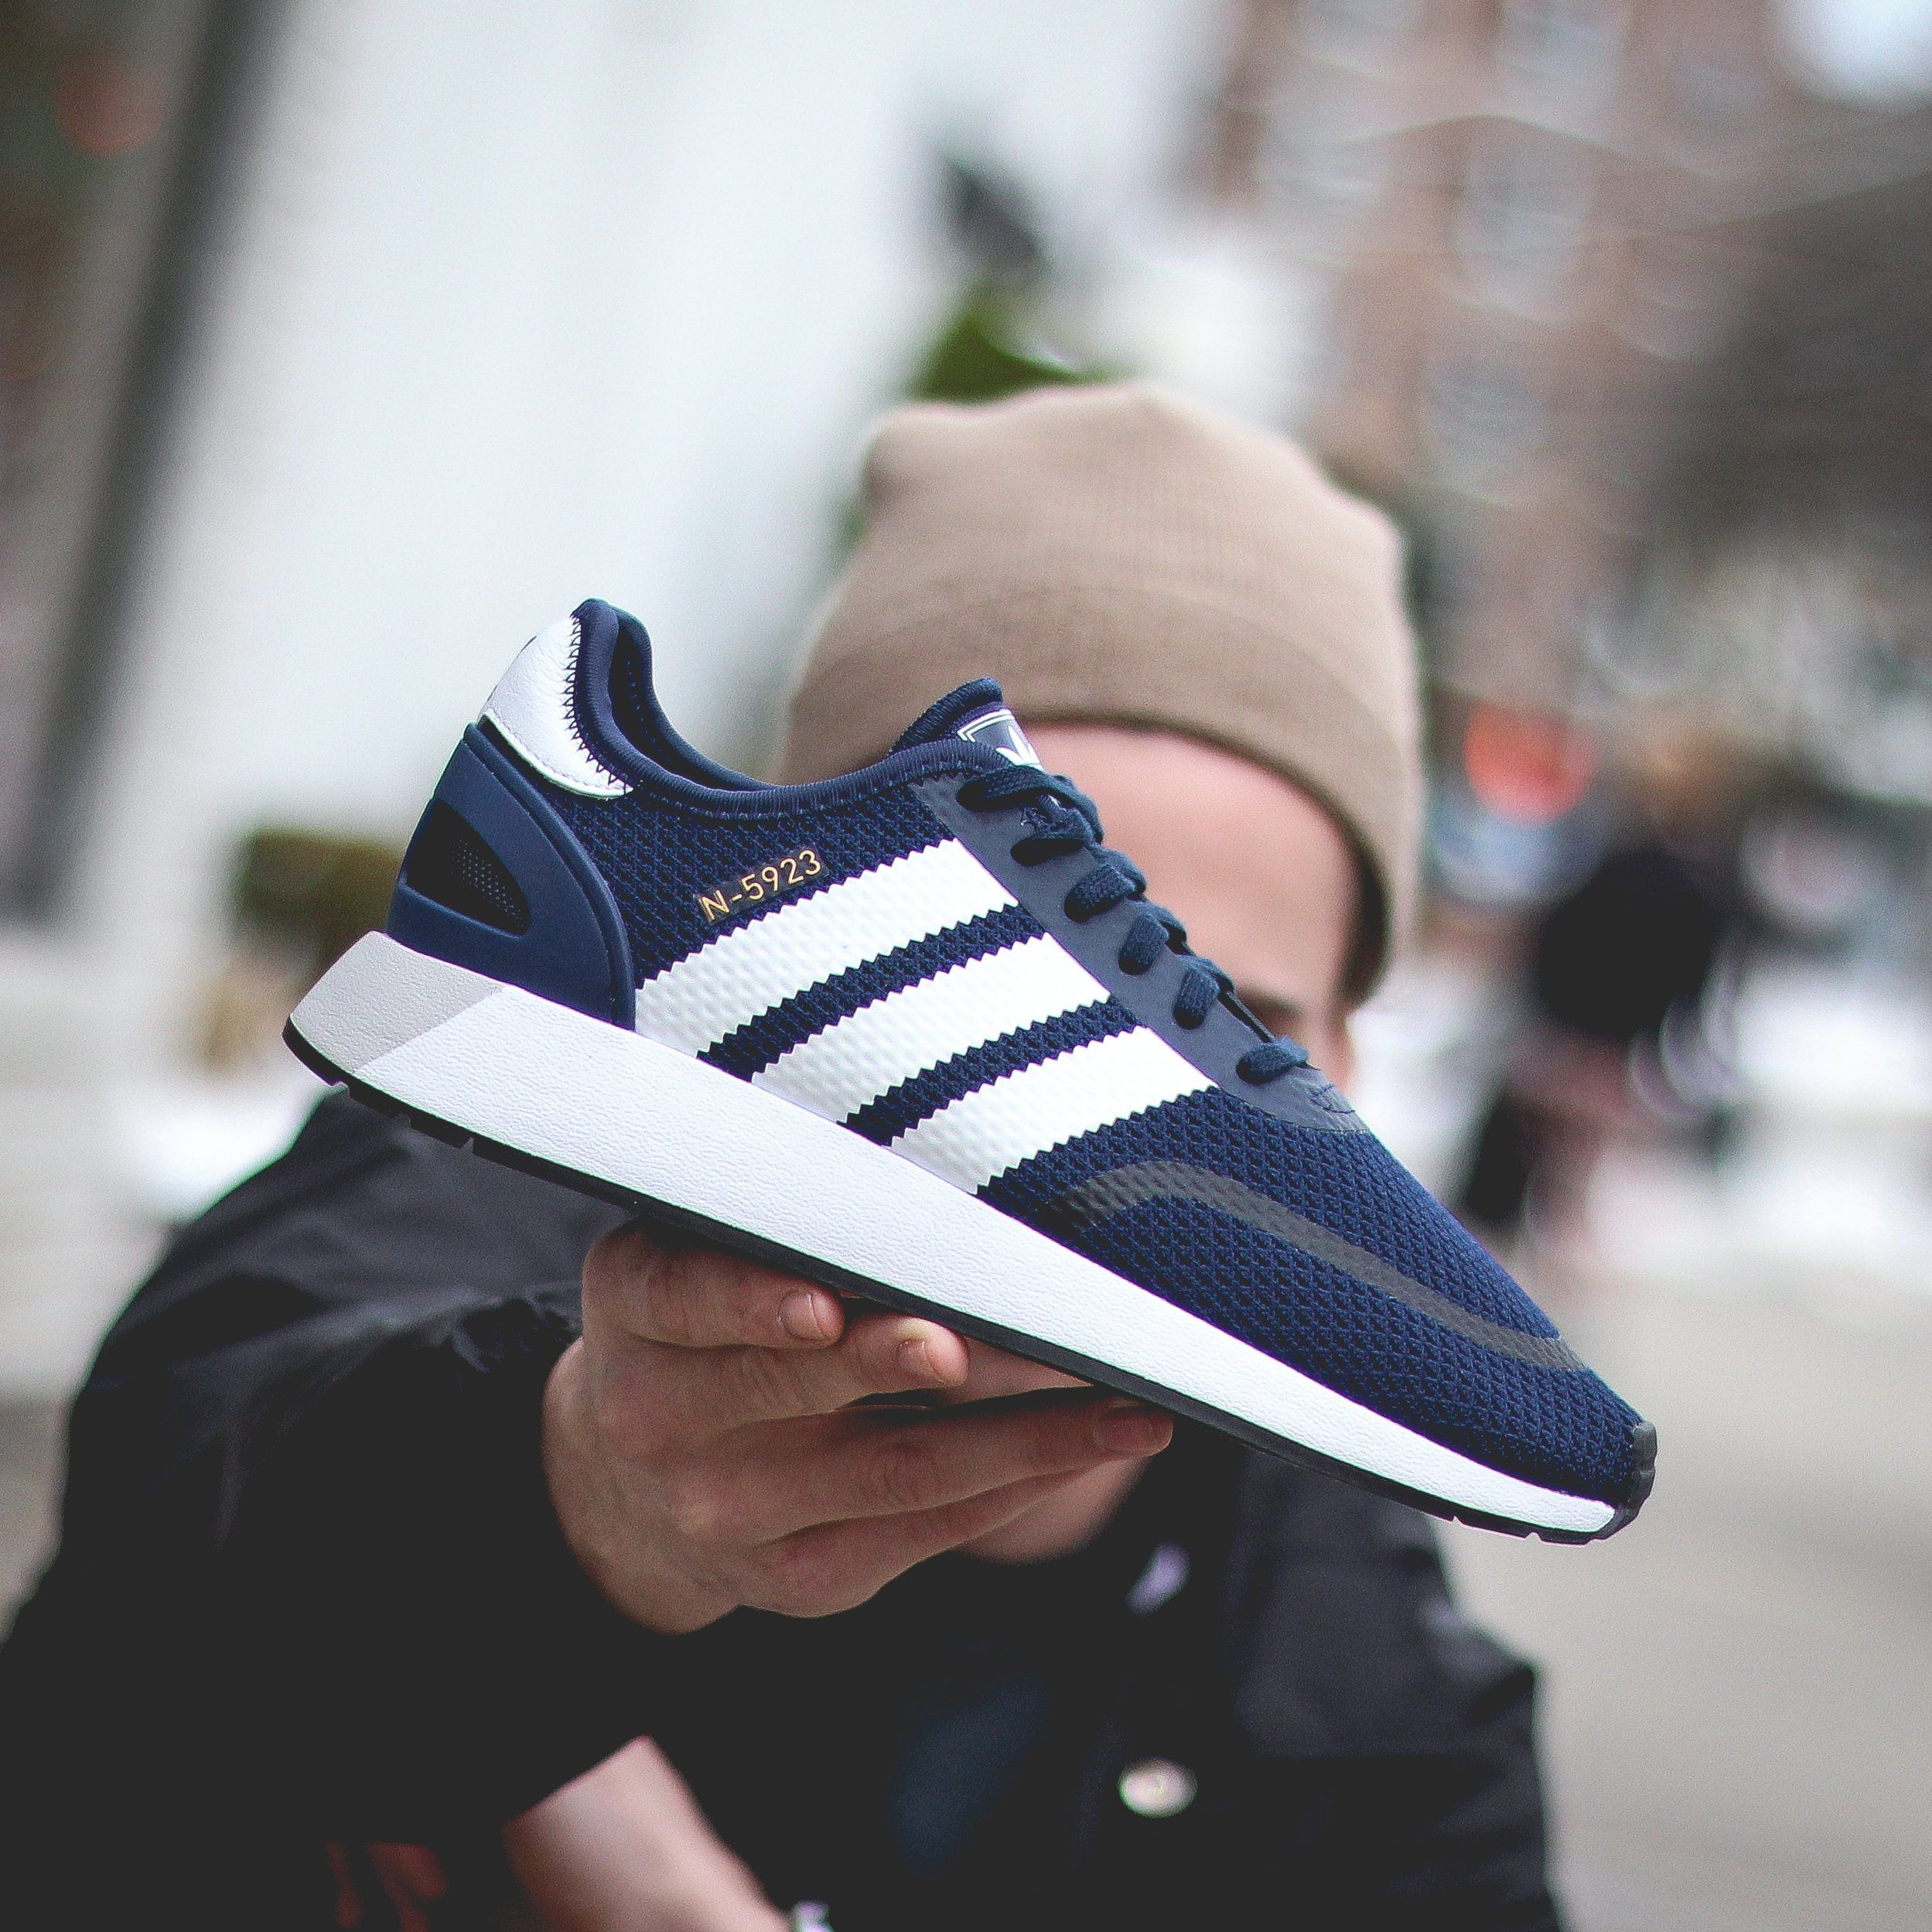 Adidas N-5923 - Navy | Sneakers, Sneakers men fashion ...